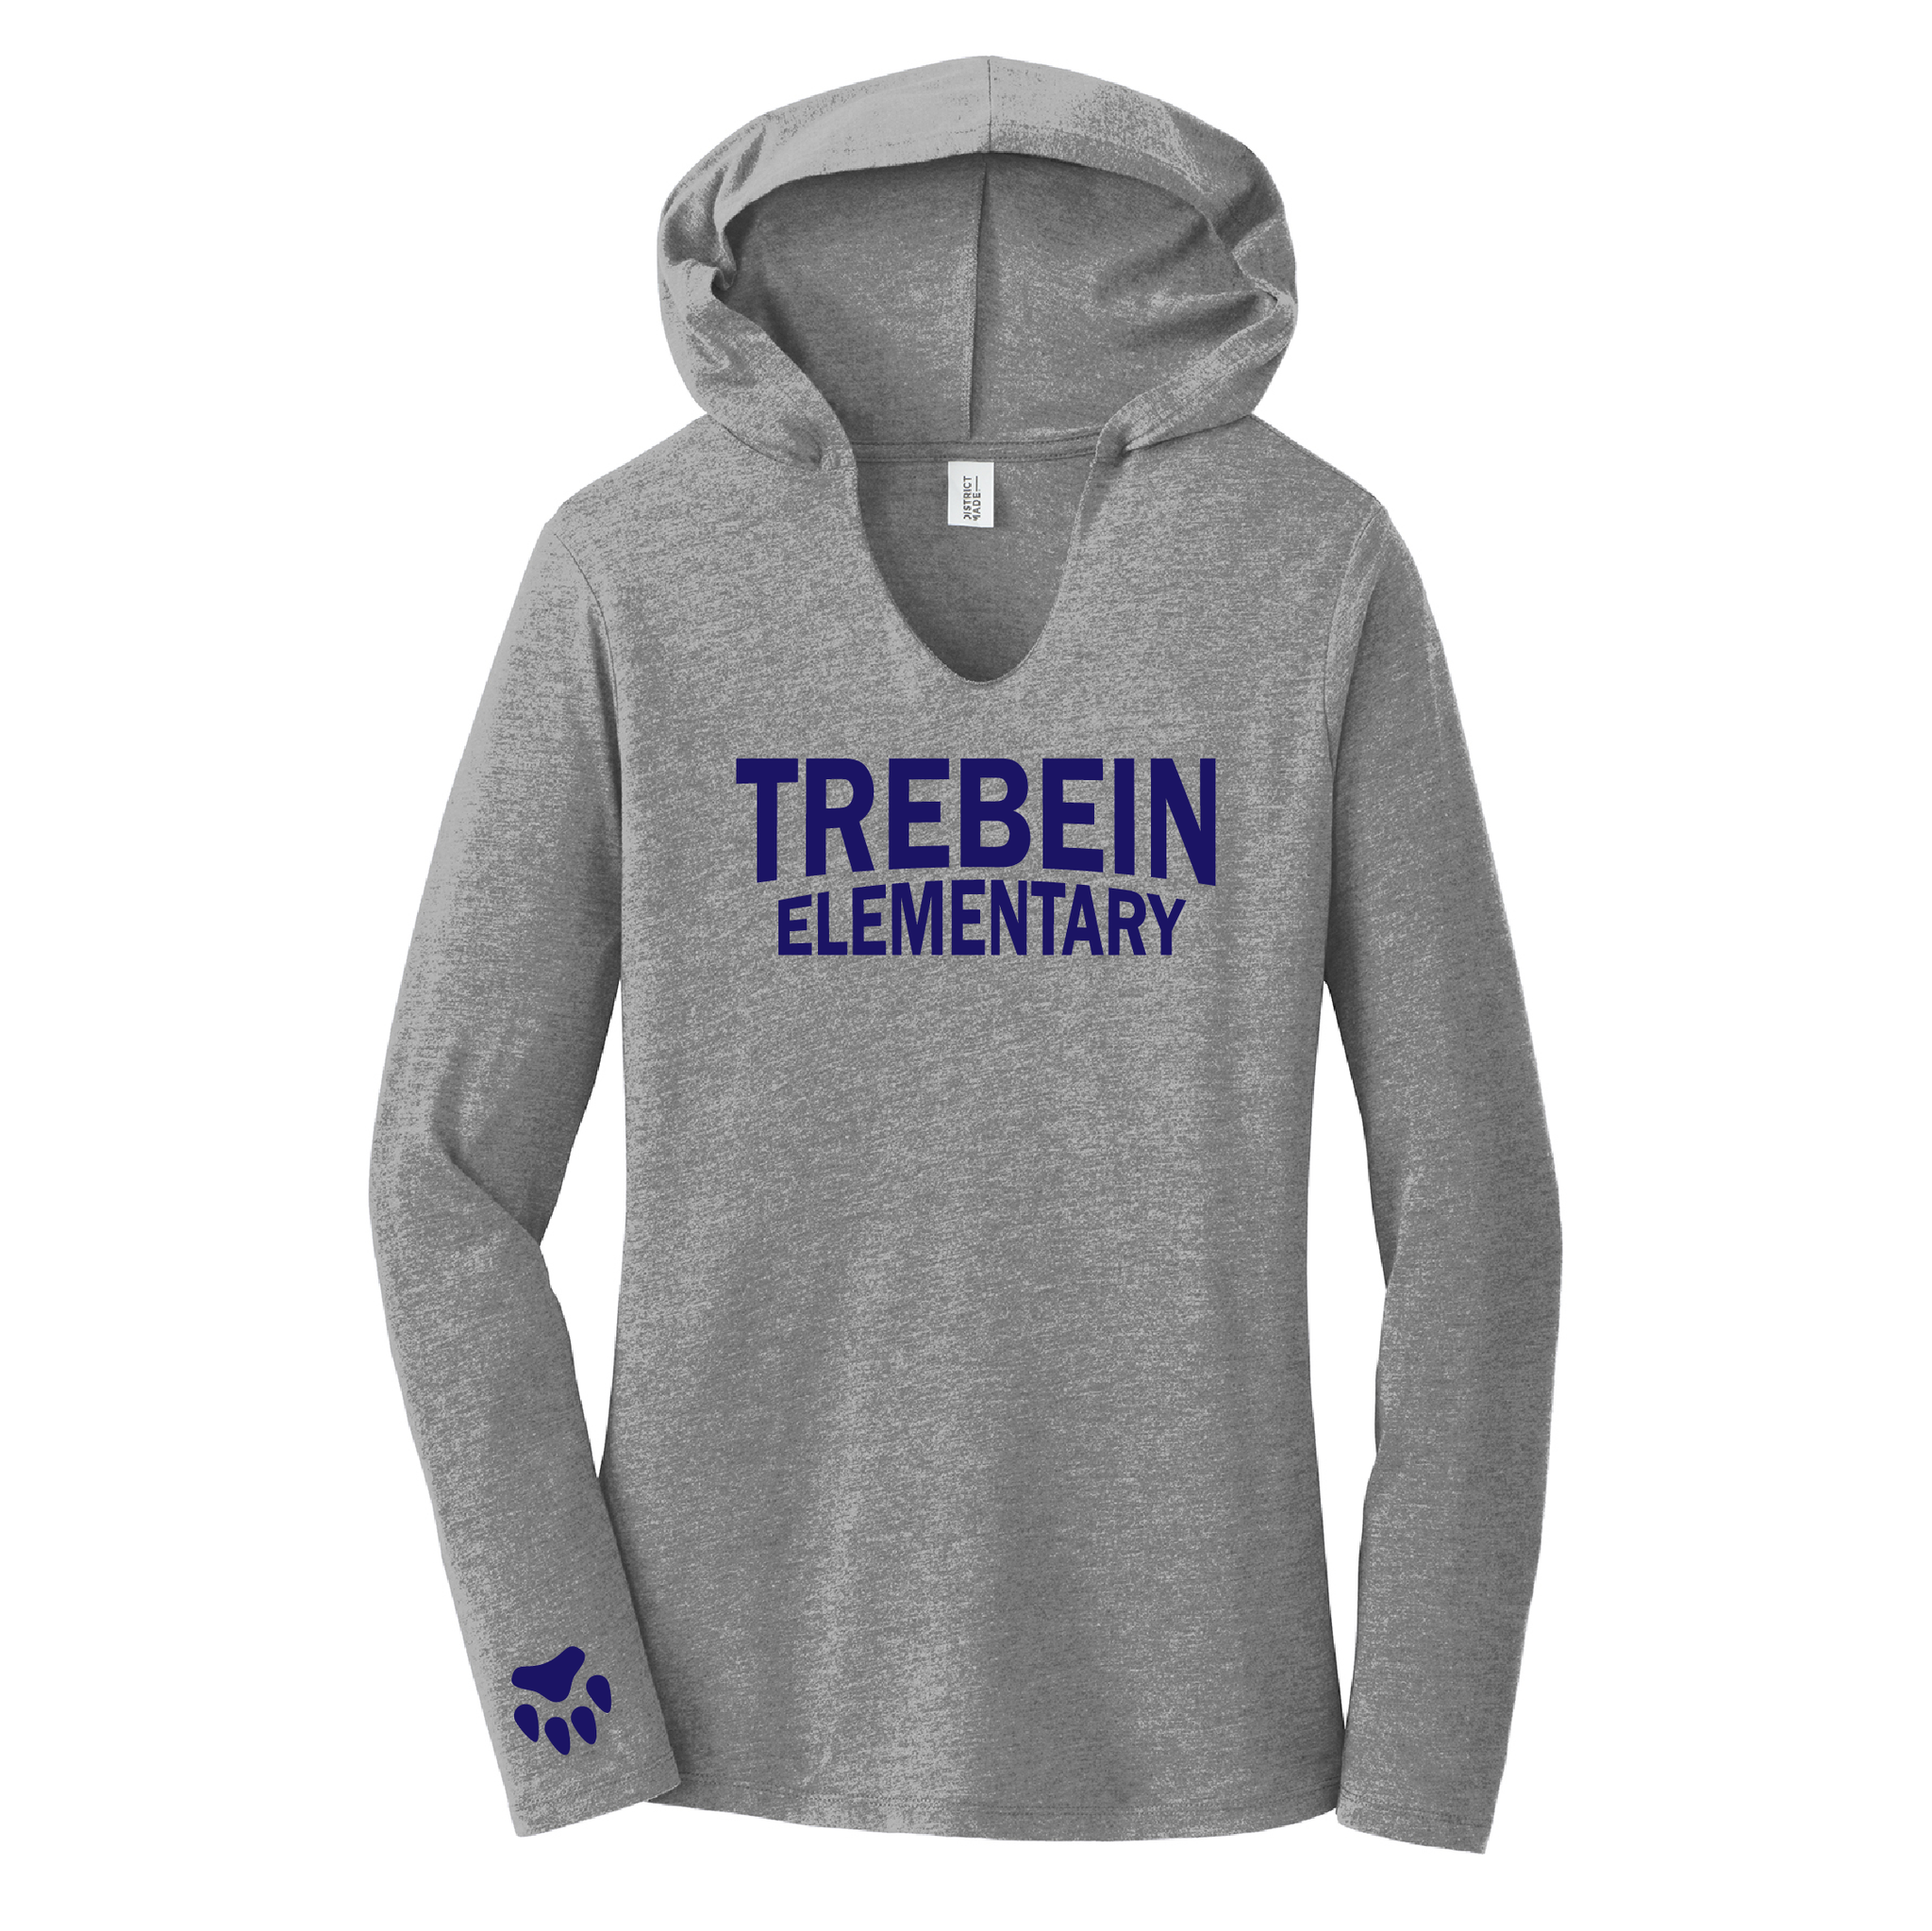 Trebein Elementary Ladies Tri-Blend Long Sleeve Hoodie